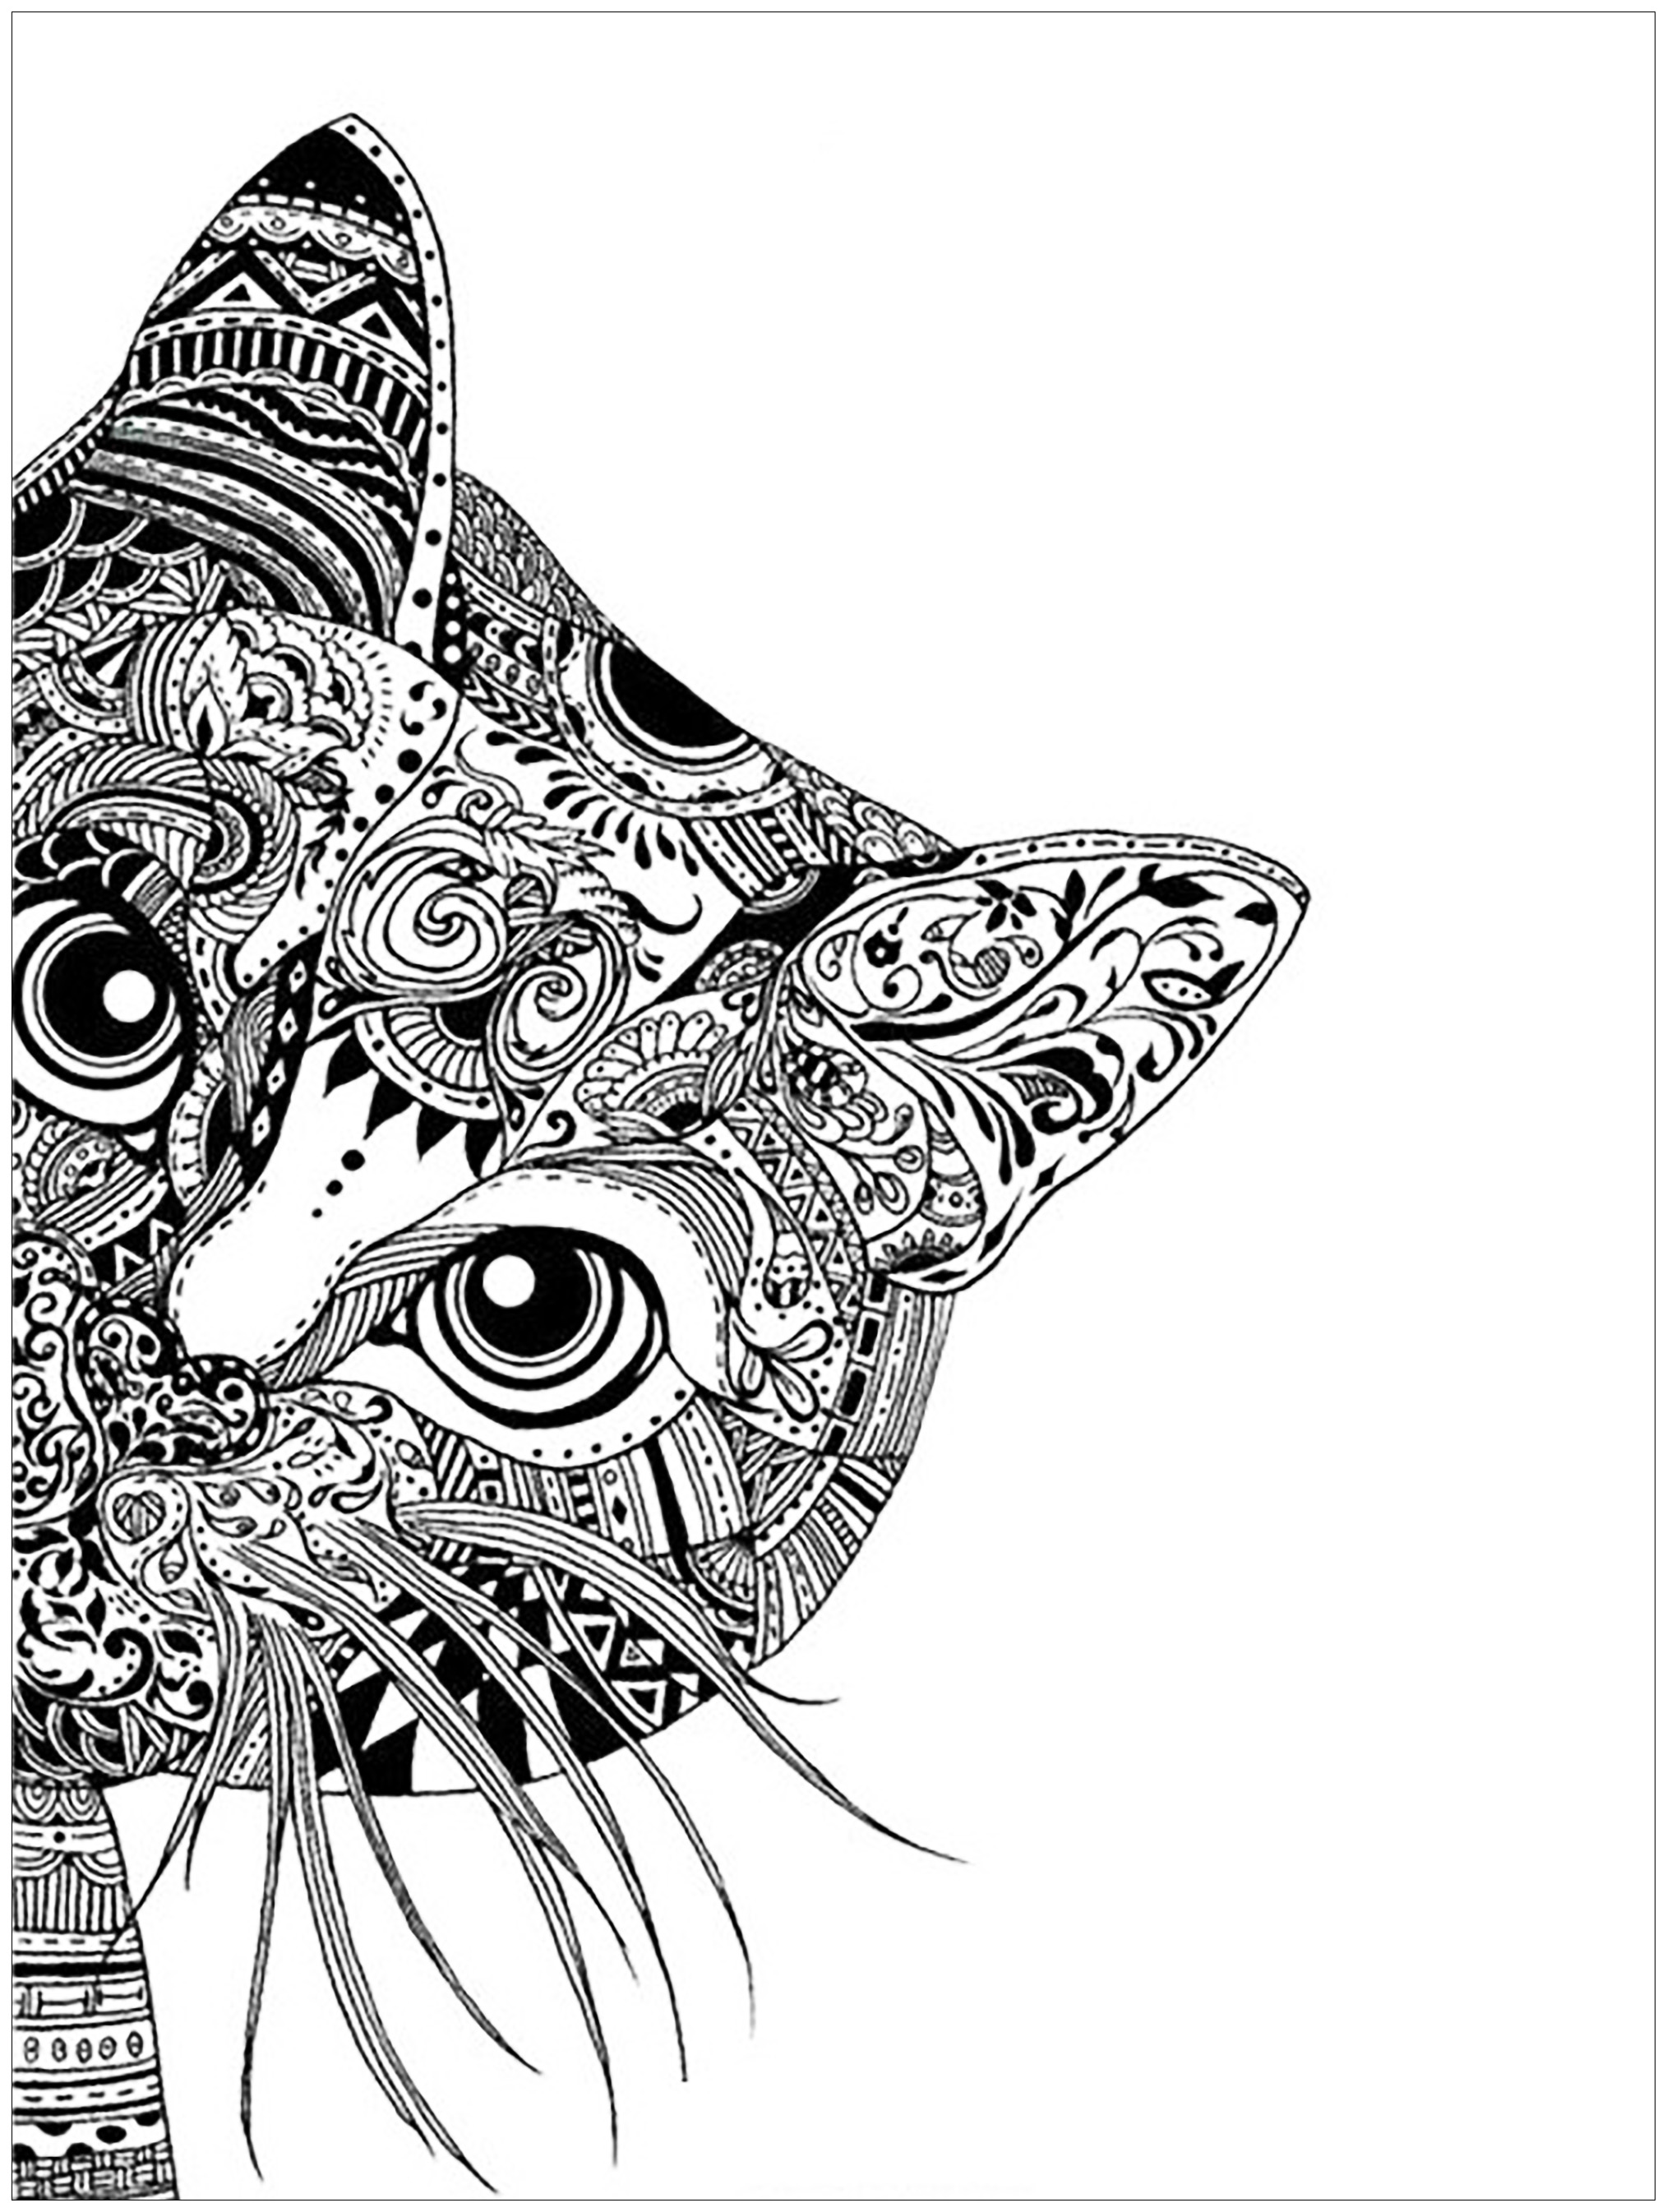 Coloring page cat head cat head image with pet